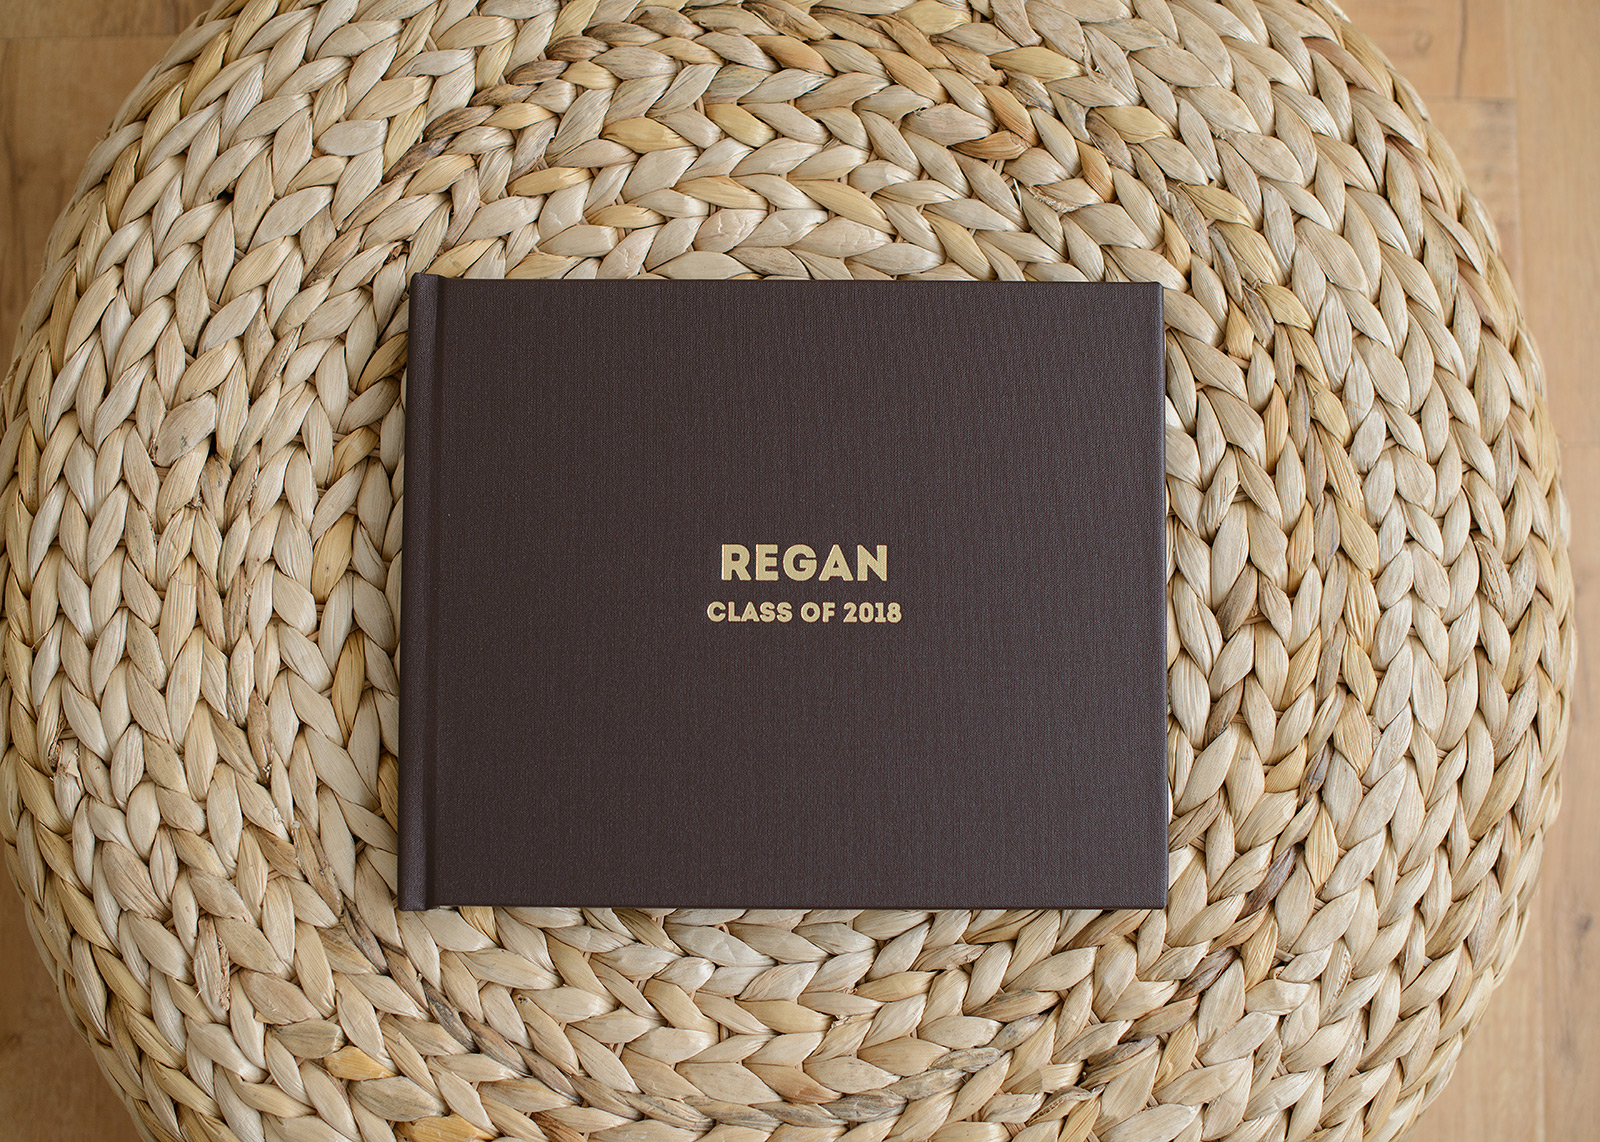 Brown Album Cover Details on Tan Woven Background